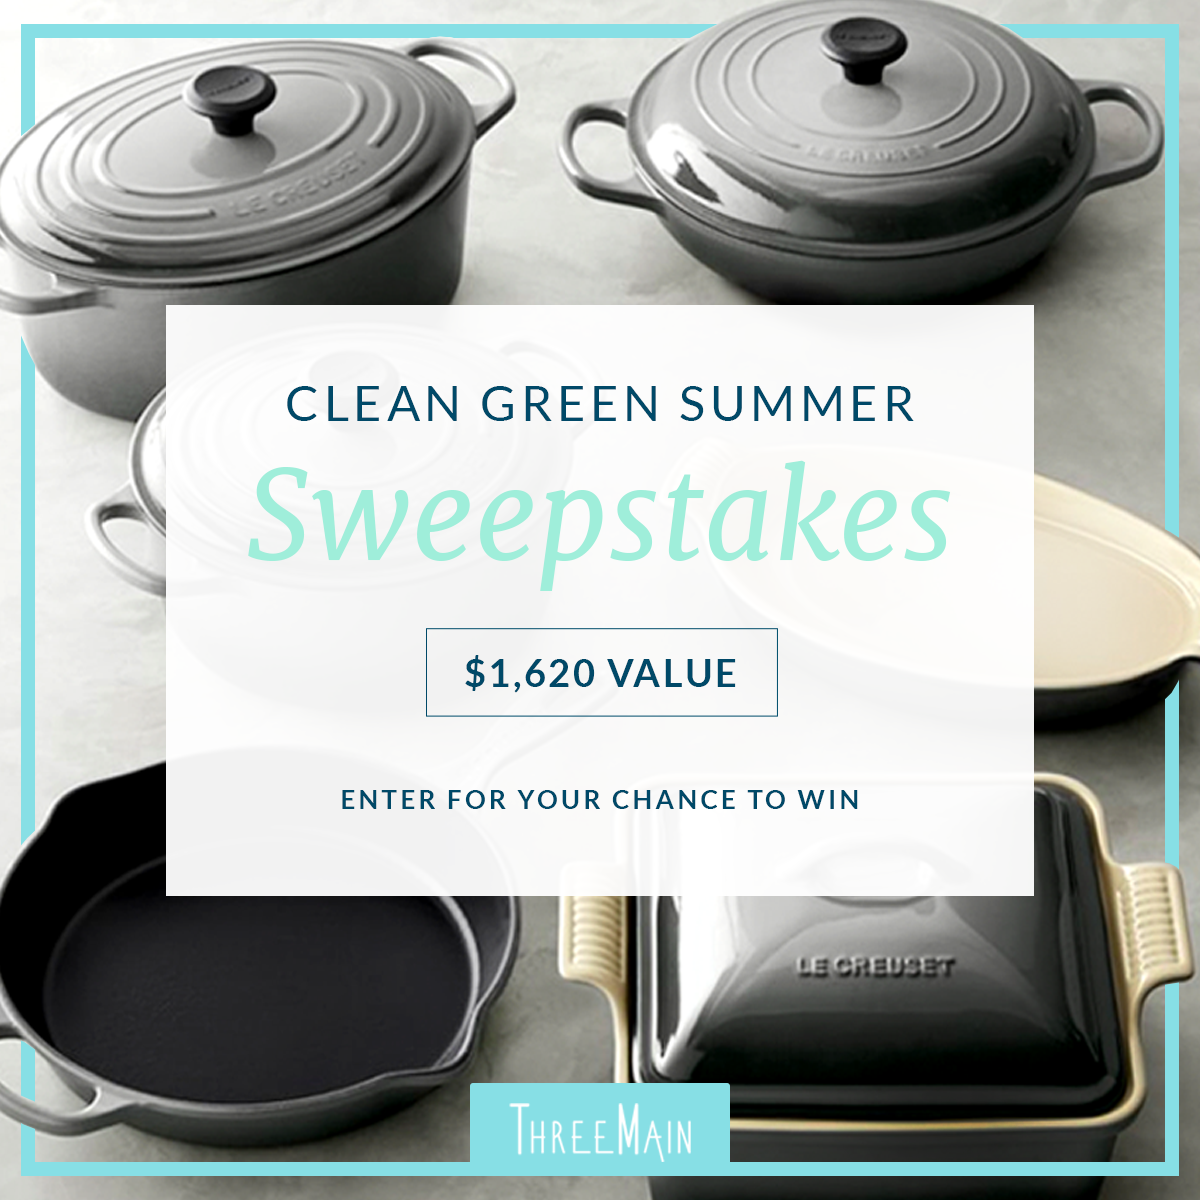 Win a Le Creuset Cast-Iron and Stoneware 10-Piece Set & Annual Blue Membership, 1 of 5 Blue Memberships or 1 of 5 Free Clean Green Starter Kits Giveaway Image